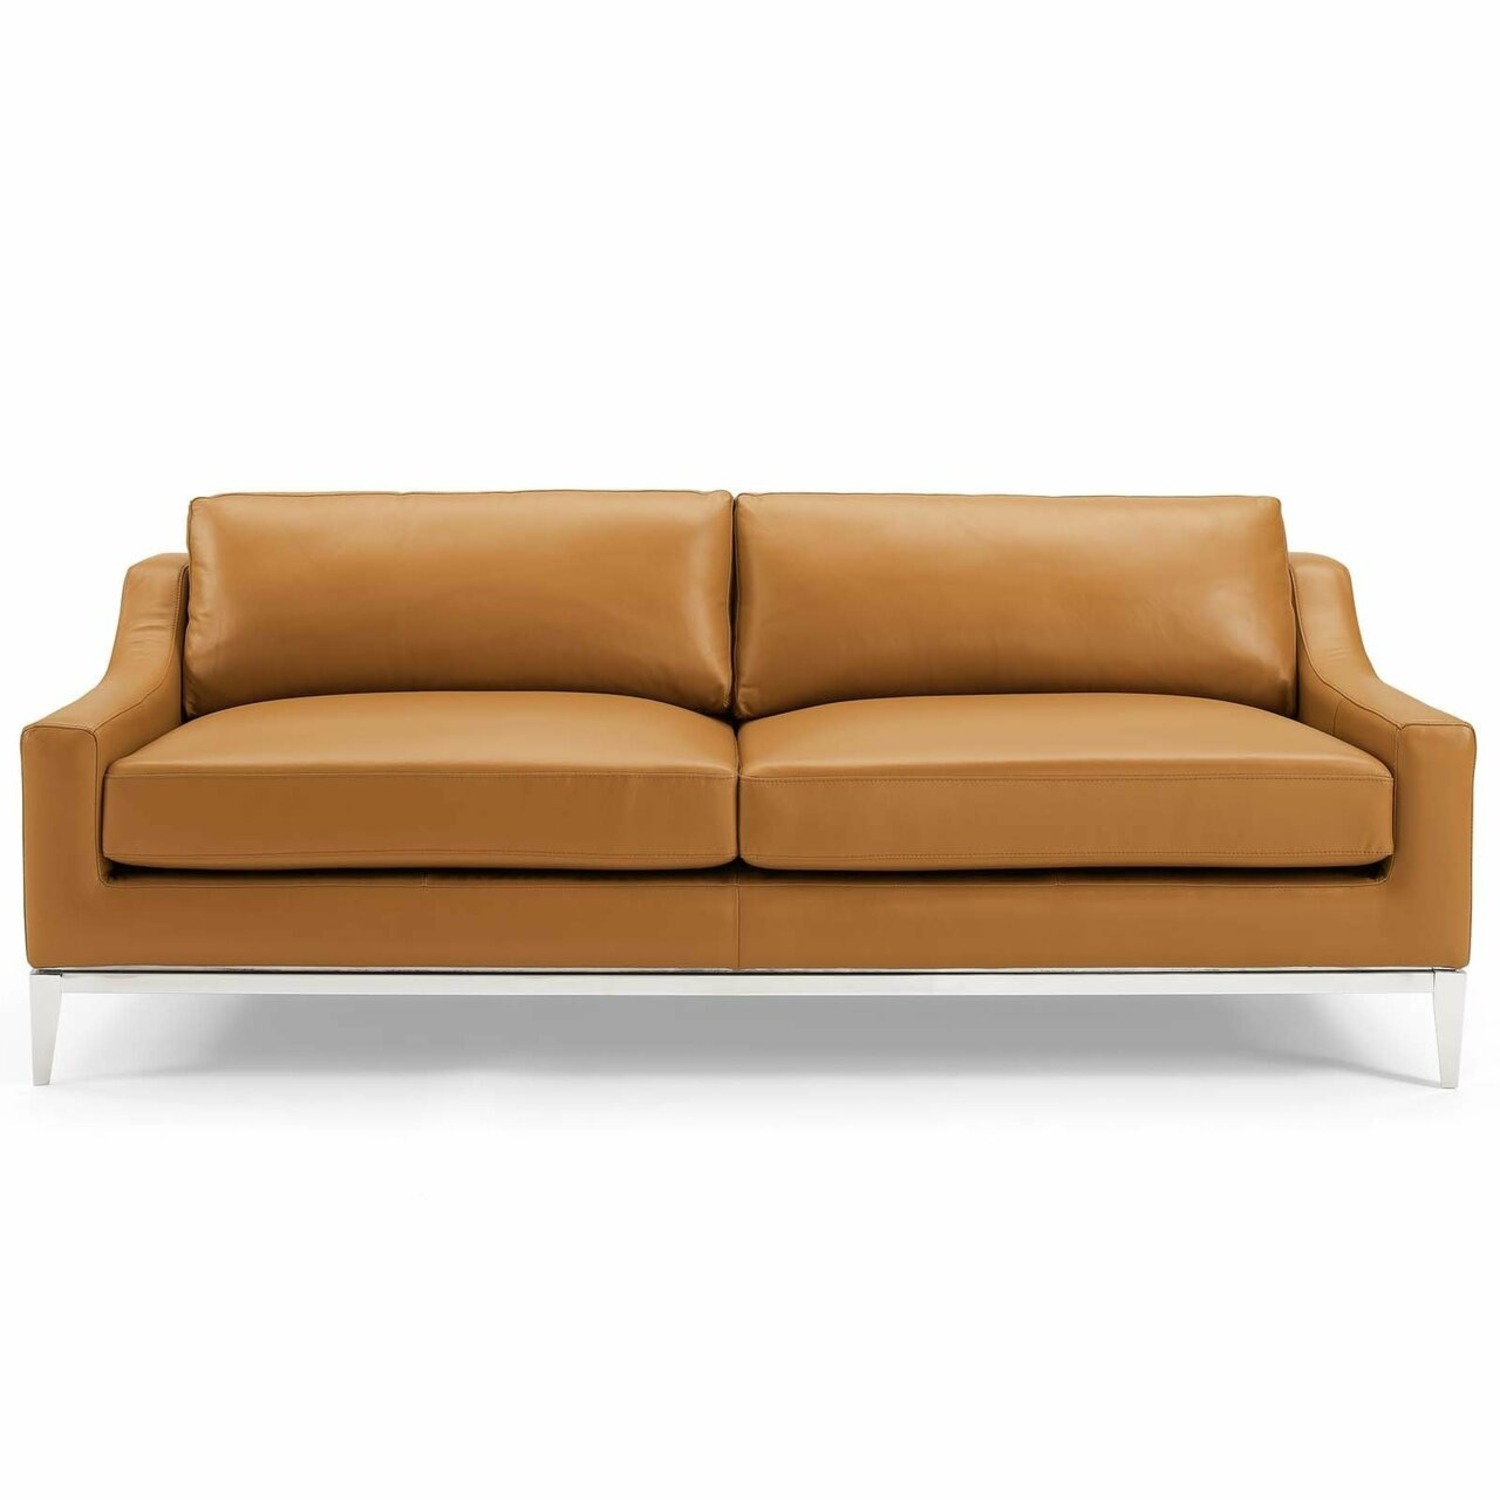 Sofa In Tan Leather Upholstery W/ Steel Base - image-1